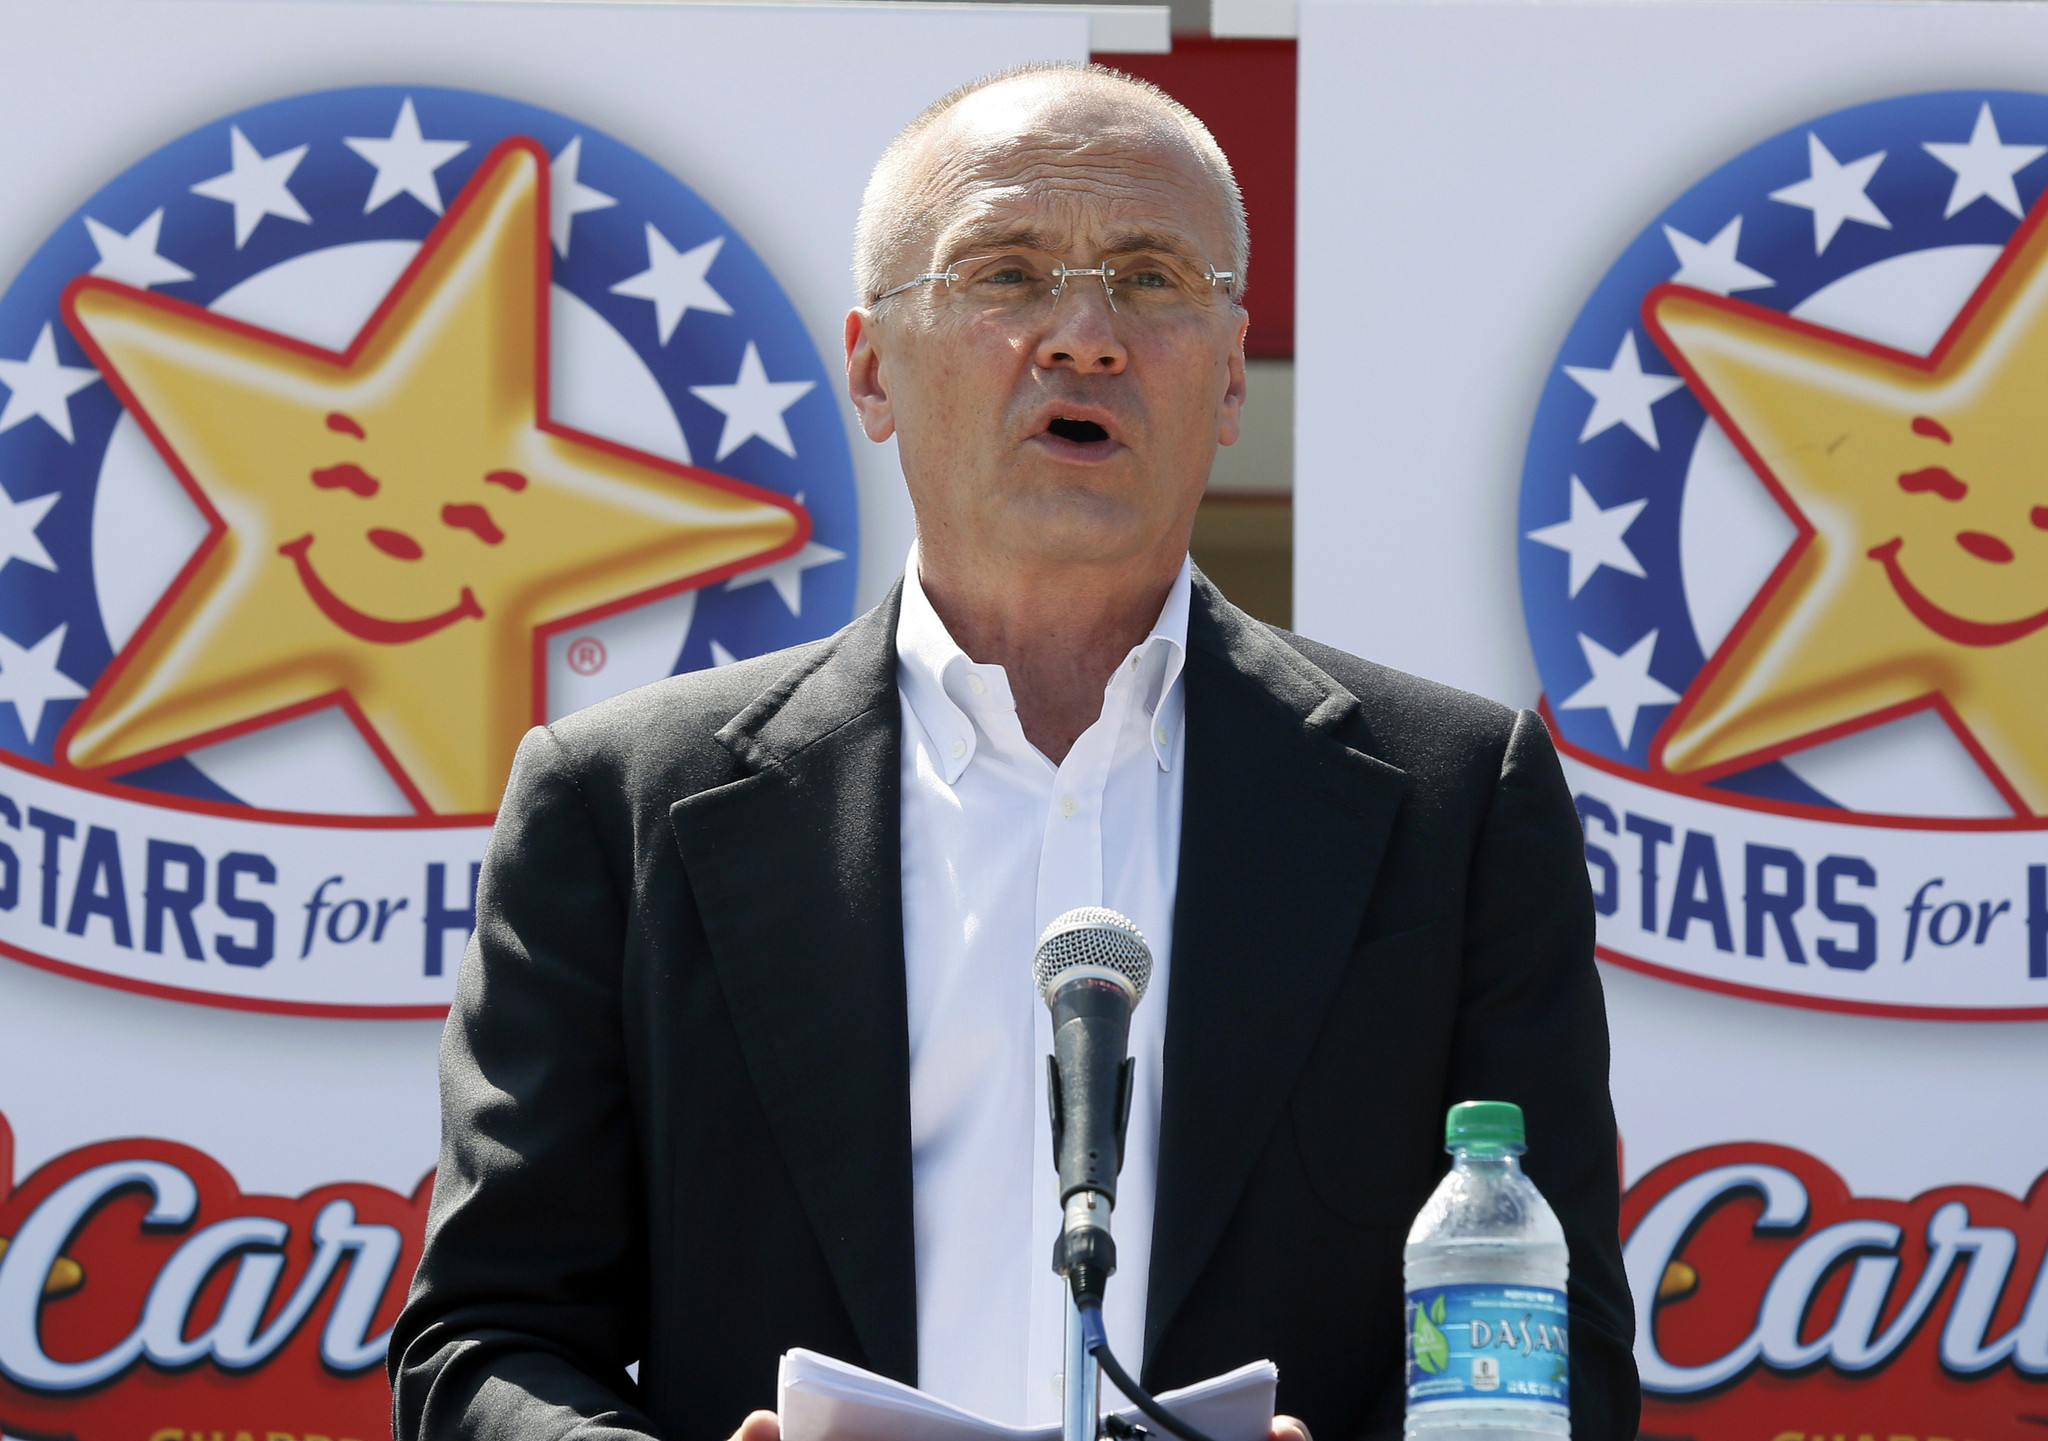 Andy Puzder, CEO of Carl's Jr. parent CKE Restaurants, at a news conference in Texas in 2014.